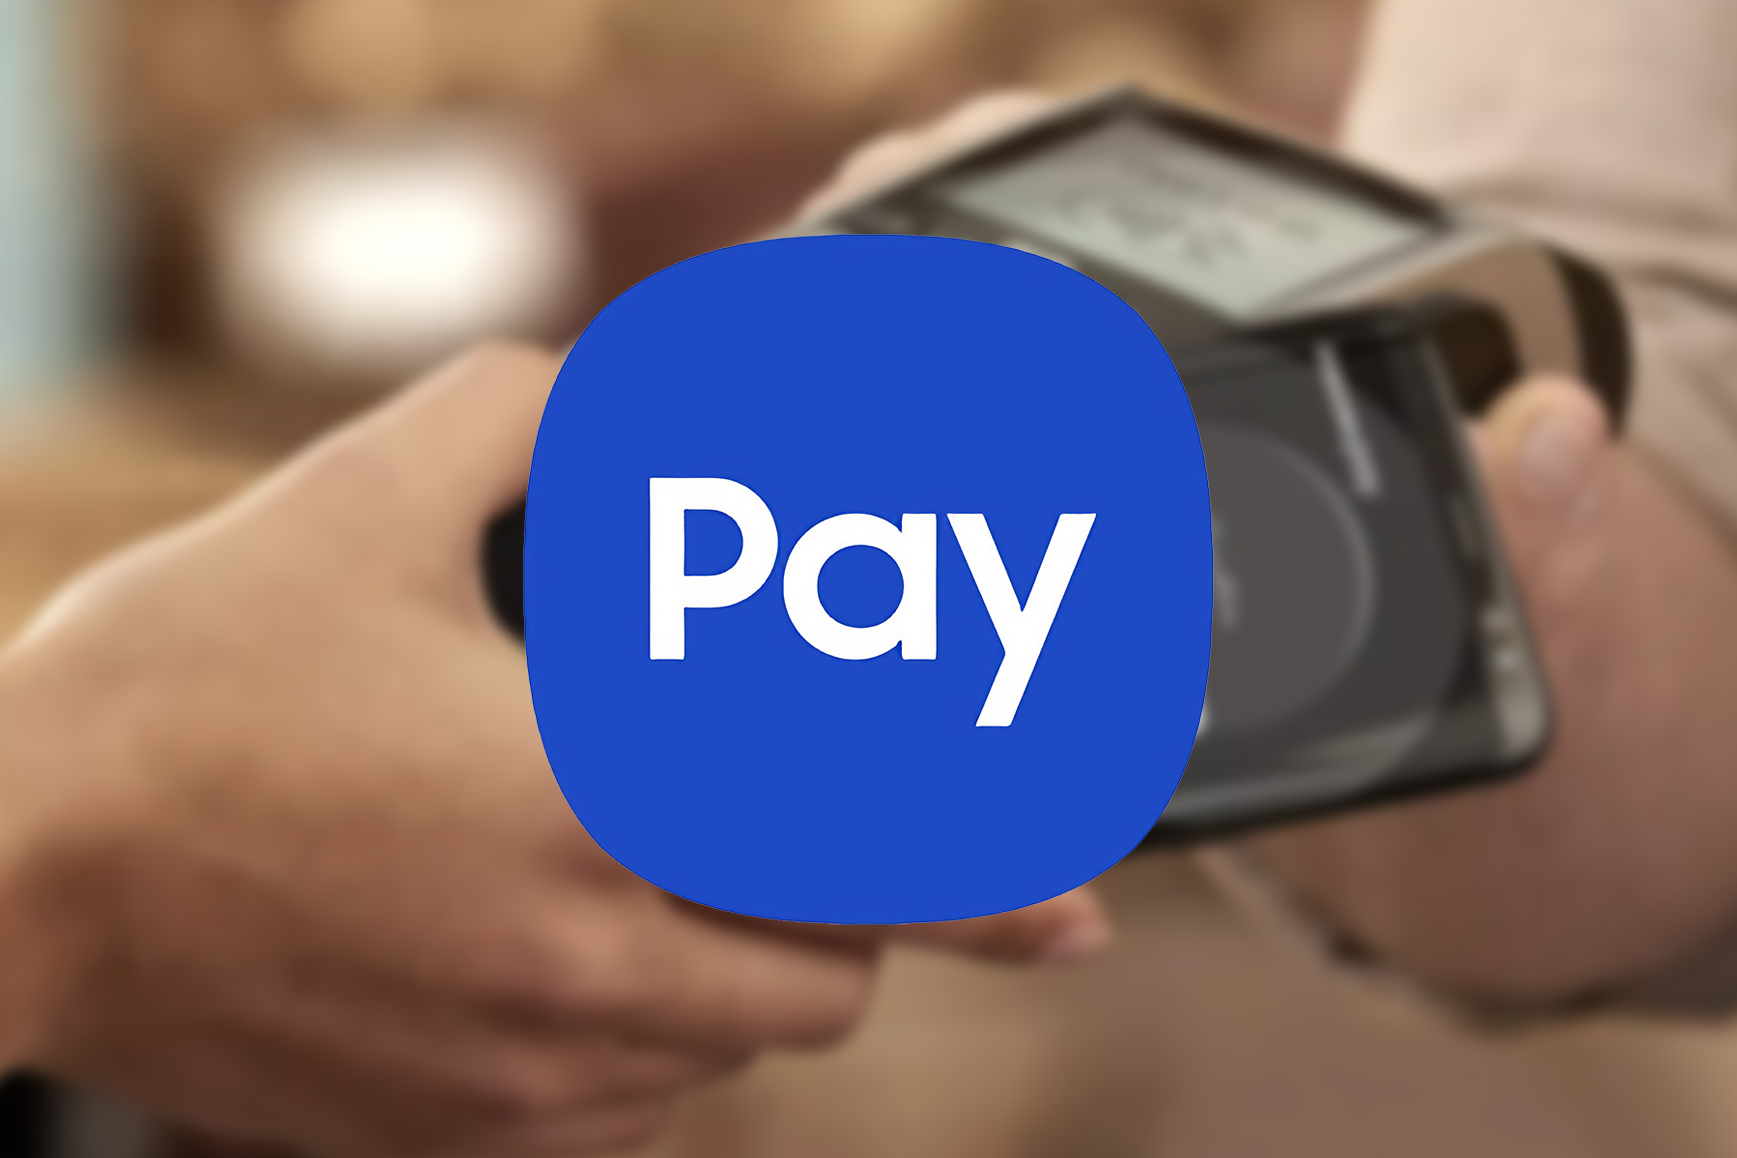 Samsung Pay is just not worth using without MST - Android Police